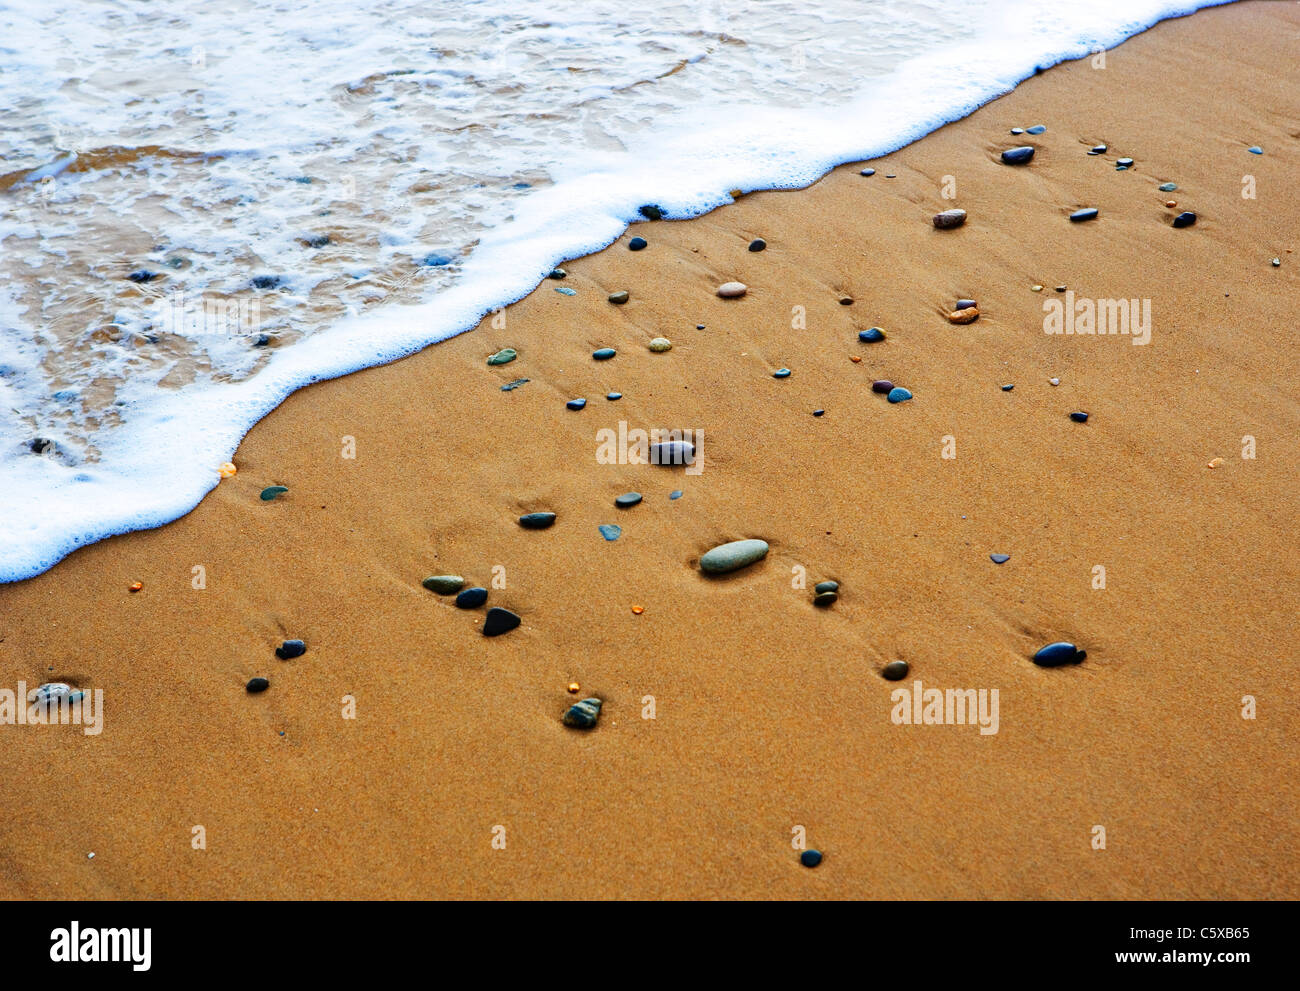 Pebbles on shore, elevated view - Stock Image